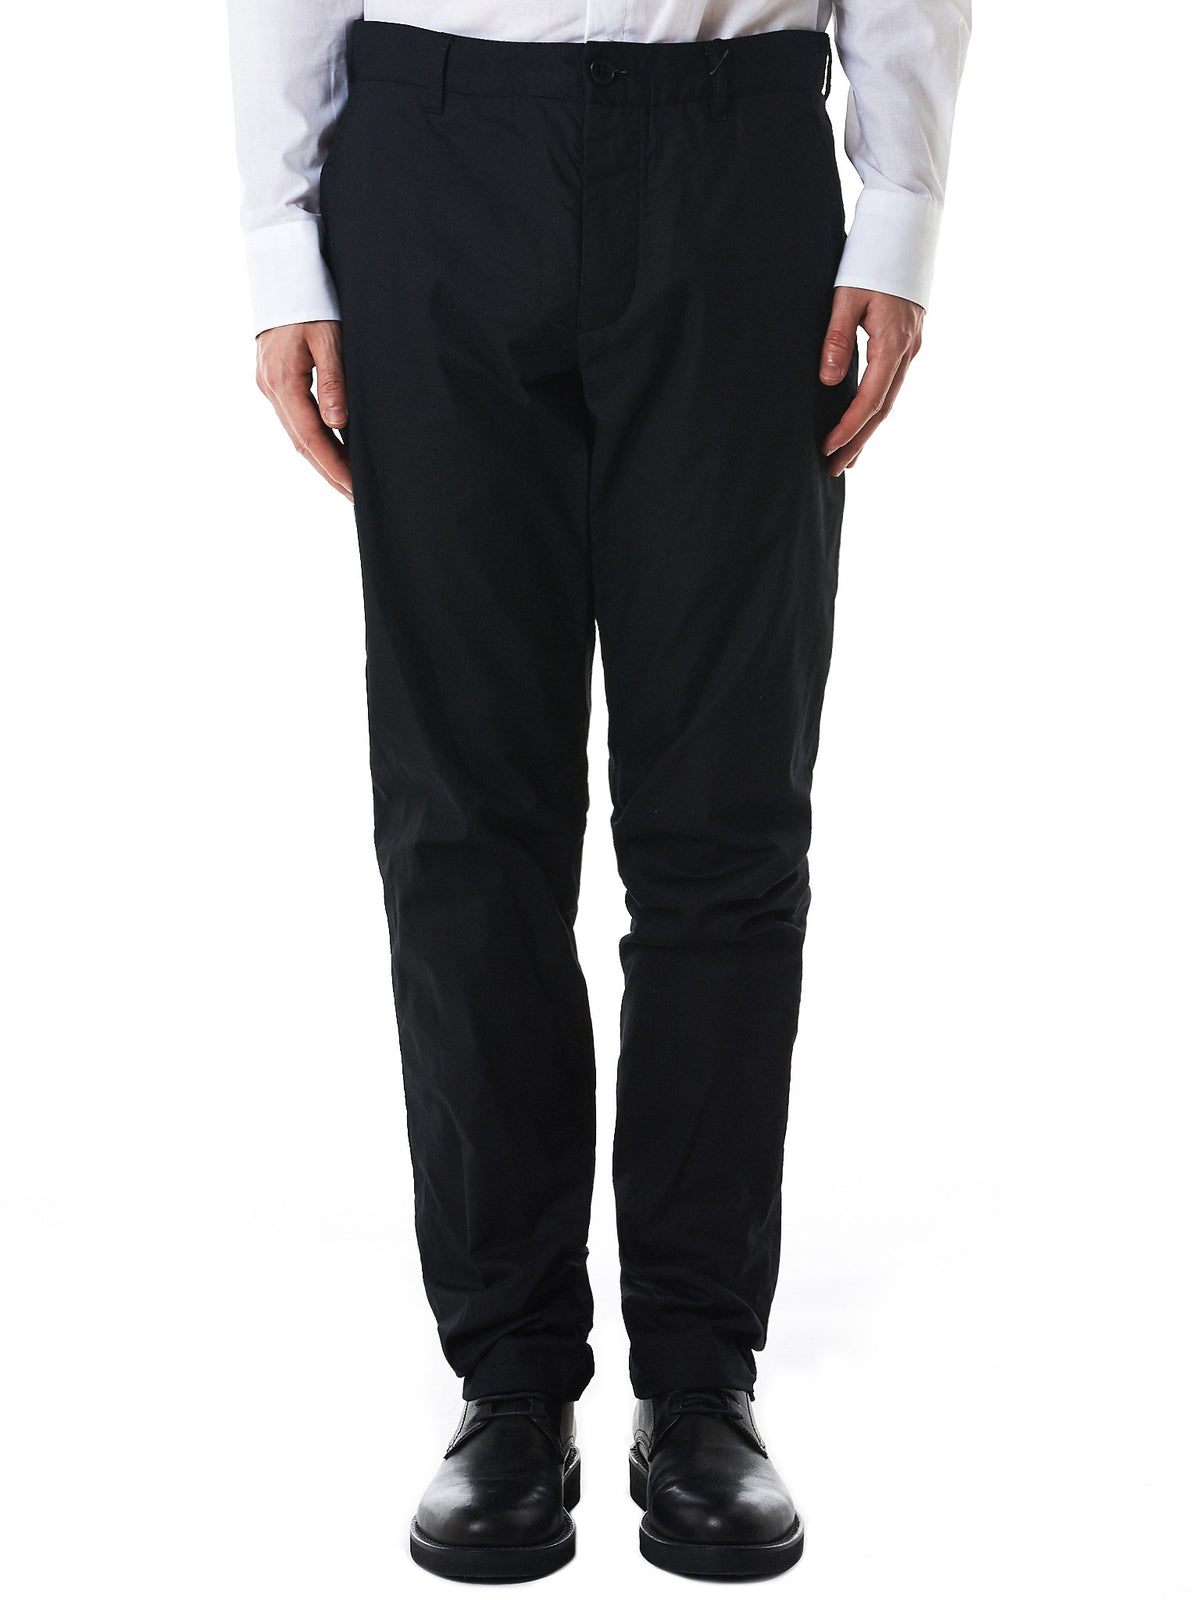 Cotton Trouser (1708-3407-120-099)